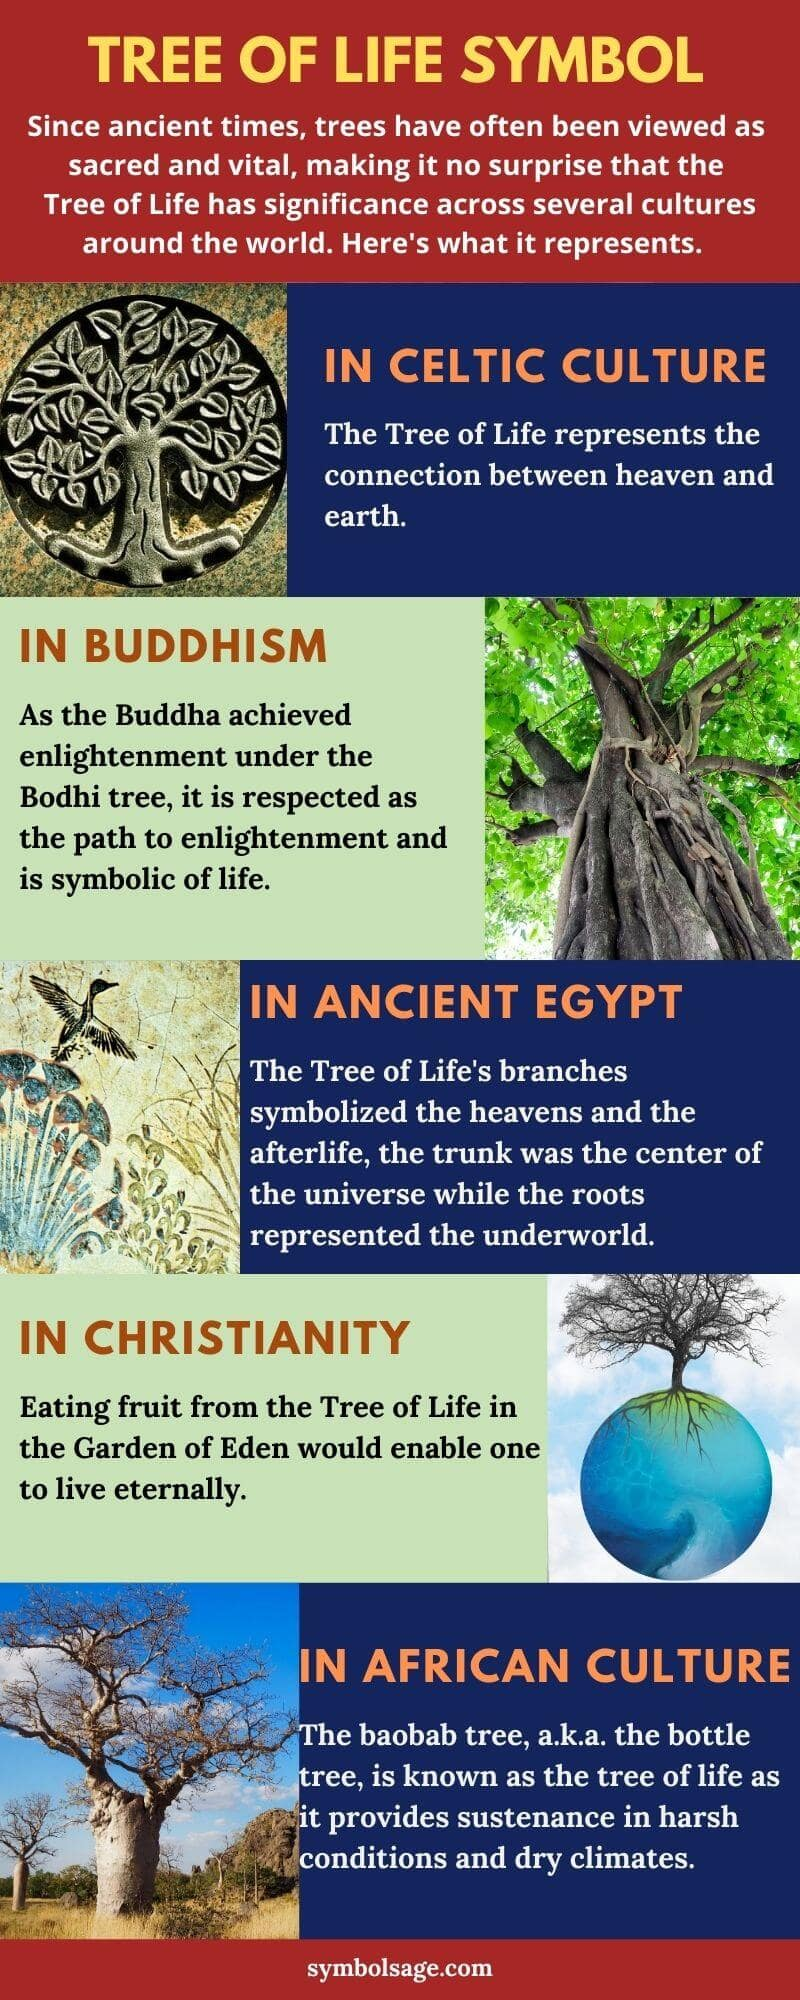 Tree of life symbol meaning in different cultures